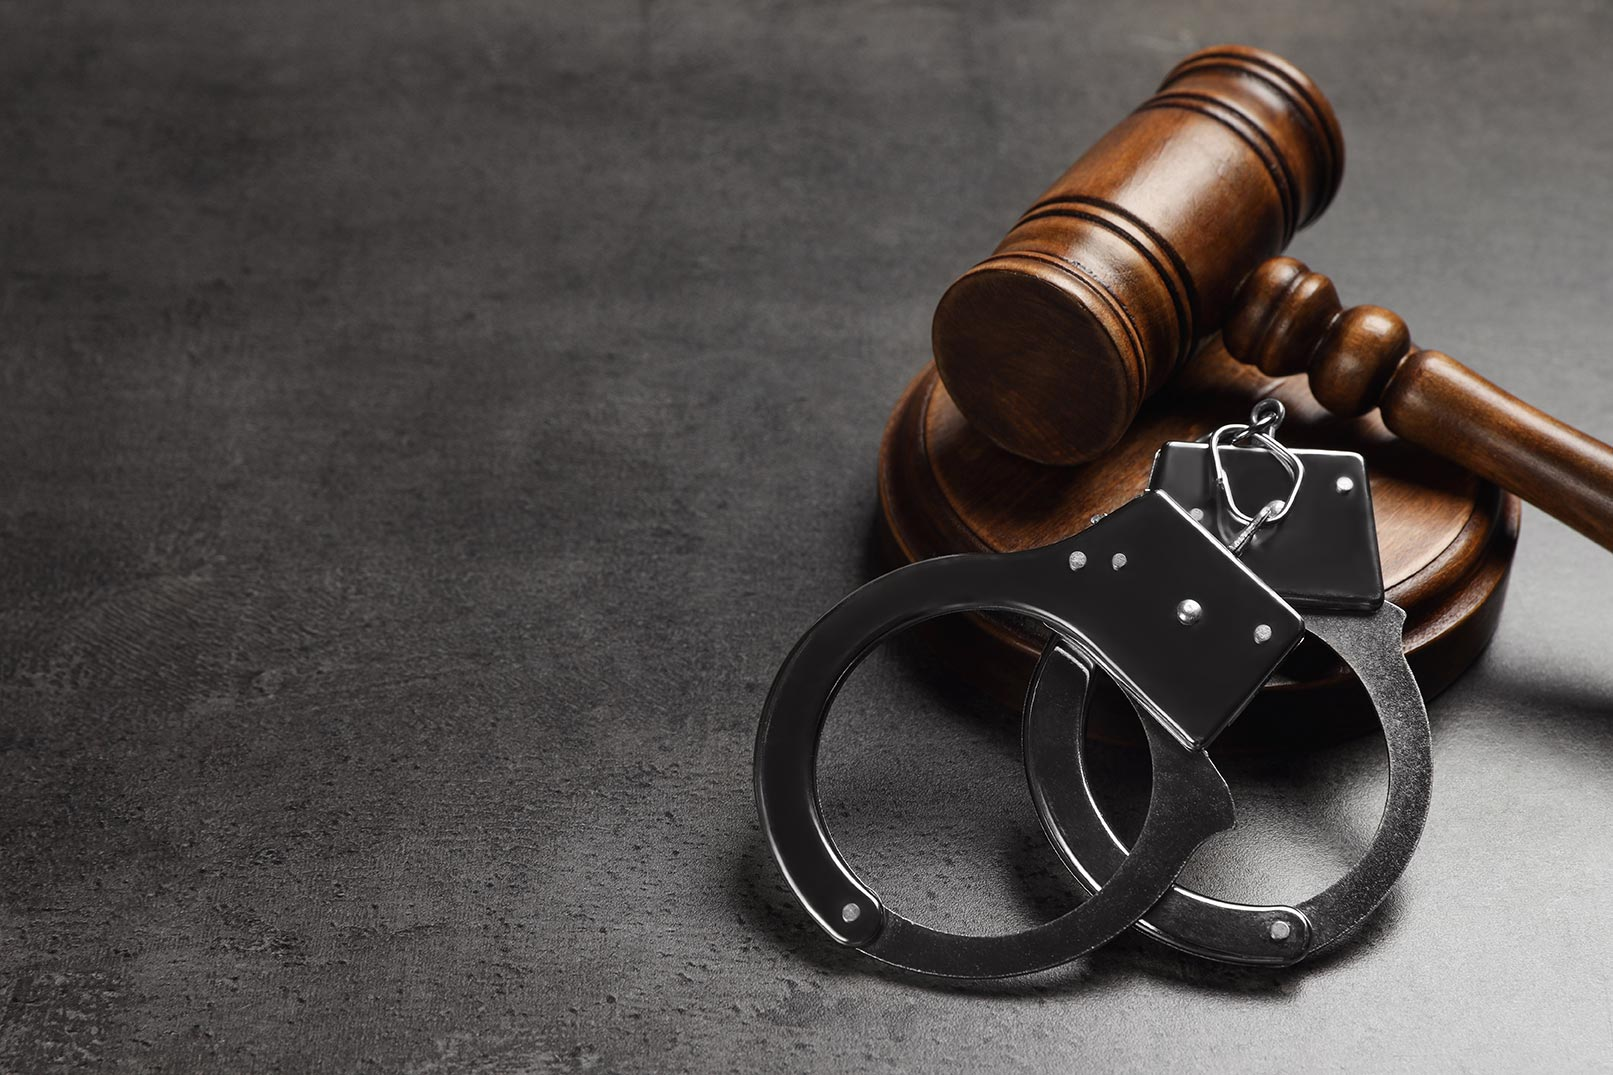 The criminal defense lawyer in Greeley